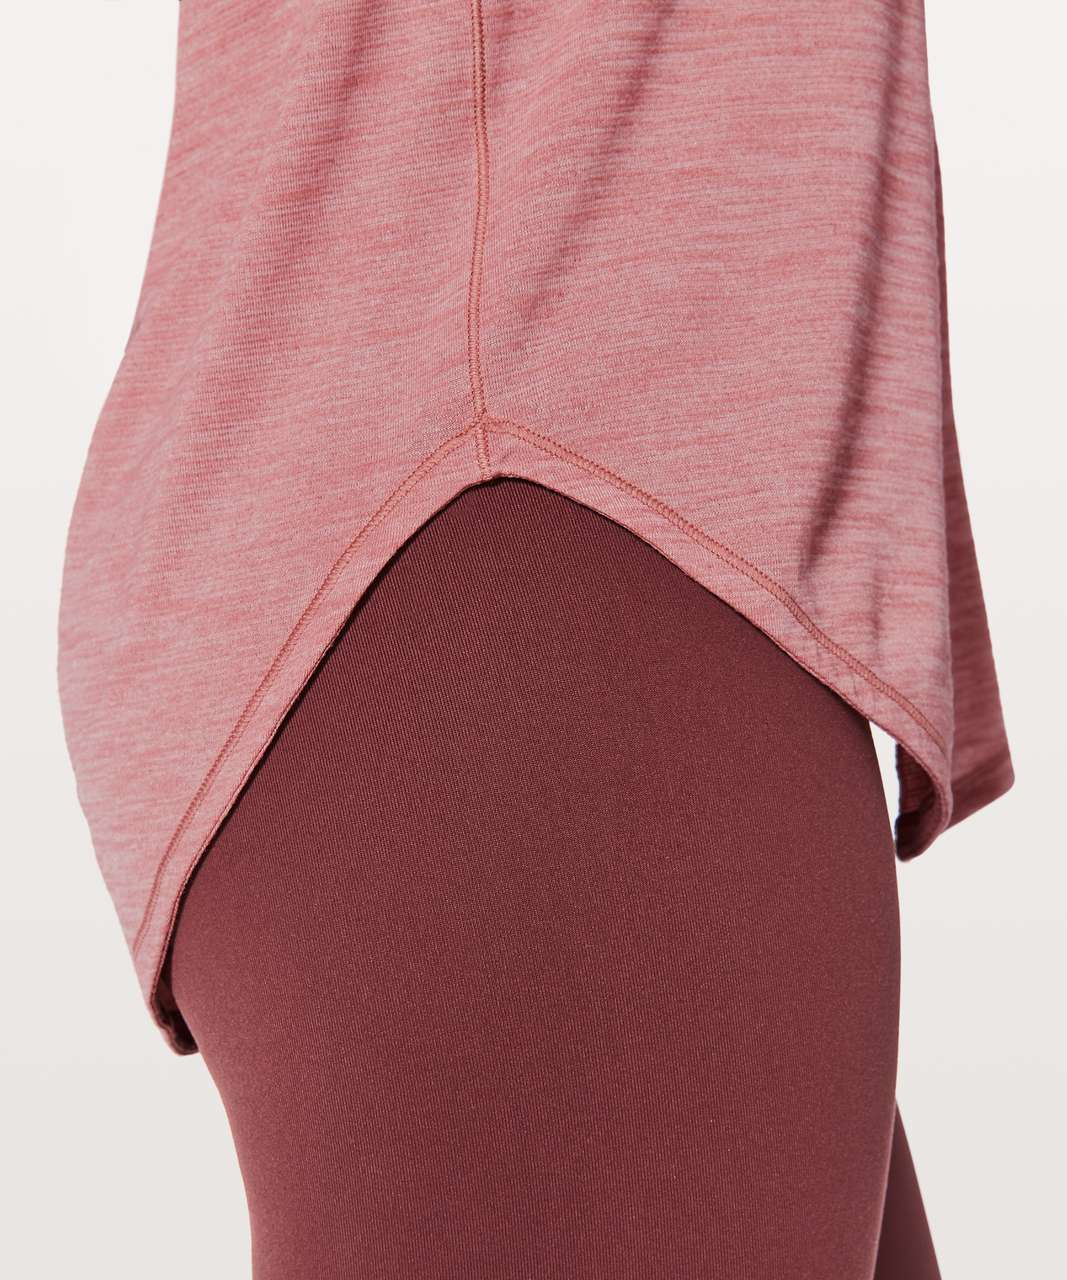 Lululemon Free To Be Serene Tank (2 In 1) Medium Support For C/D Cup - Heathered Quicksand